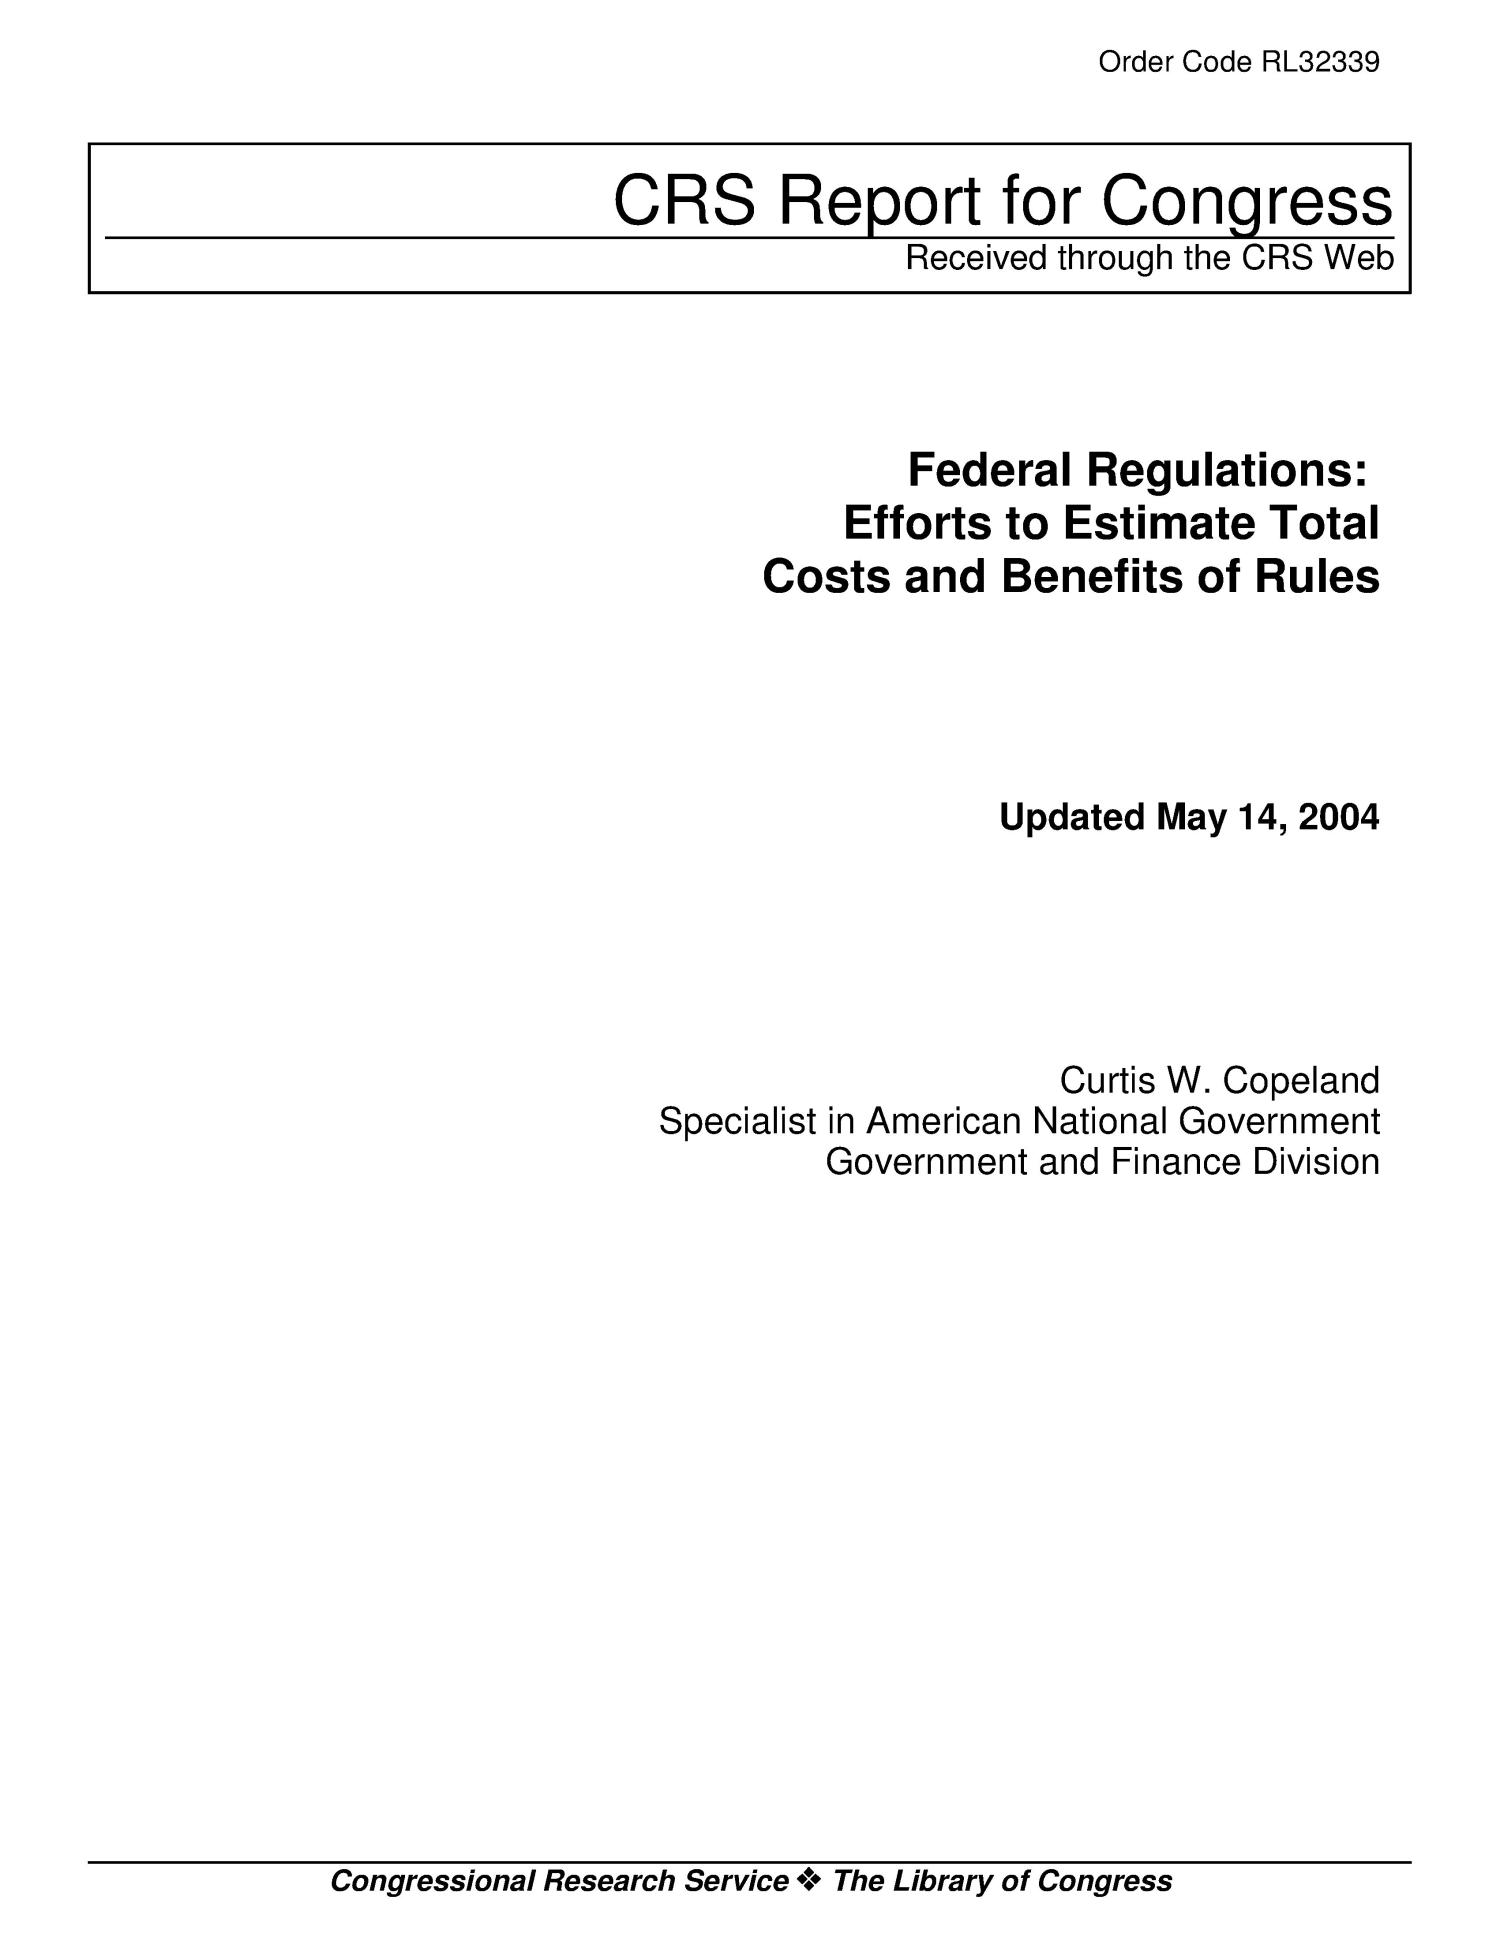 Federal Regulations: Efforts to Estimate Total Costs and Benefits of Rules                                                                                                      [Sequence #]: 1 of 21